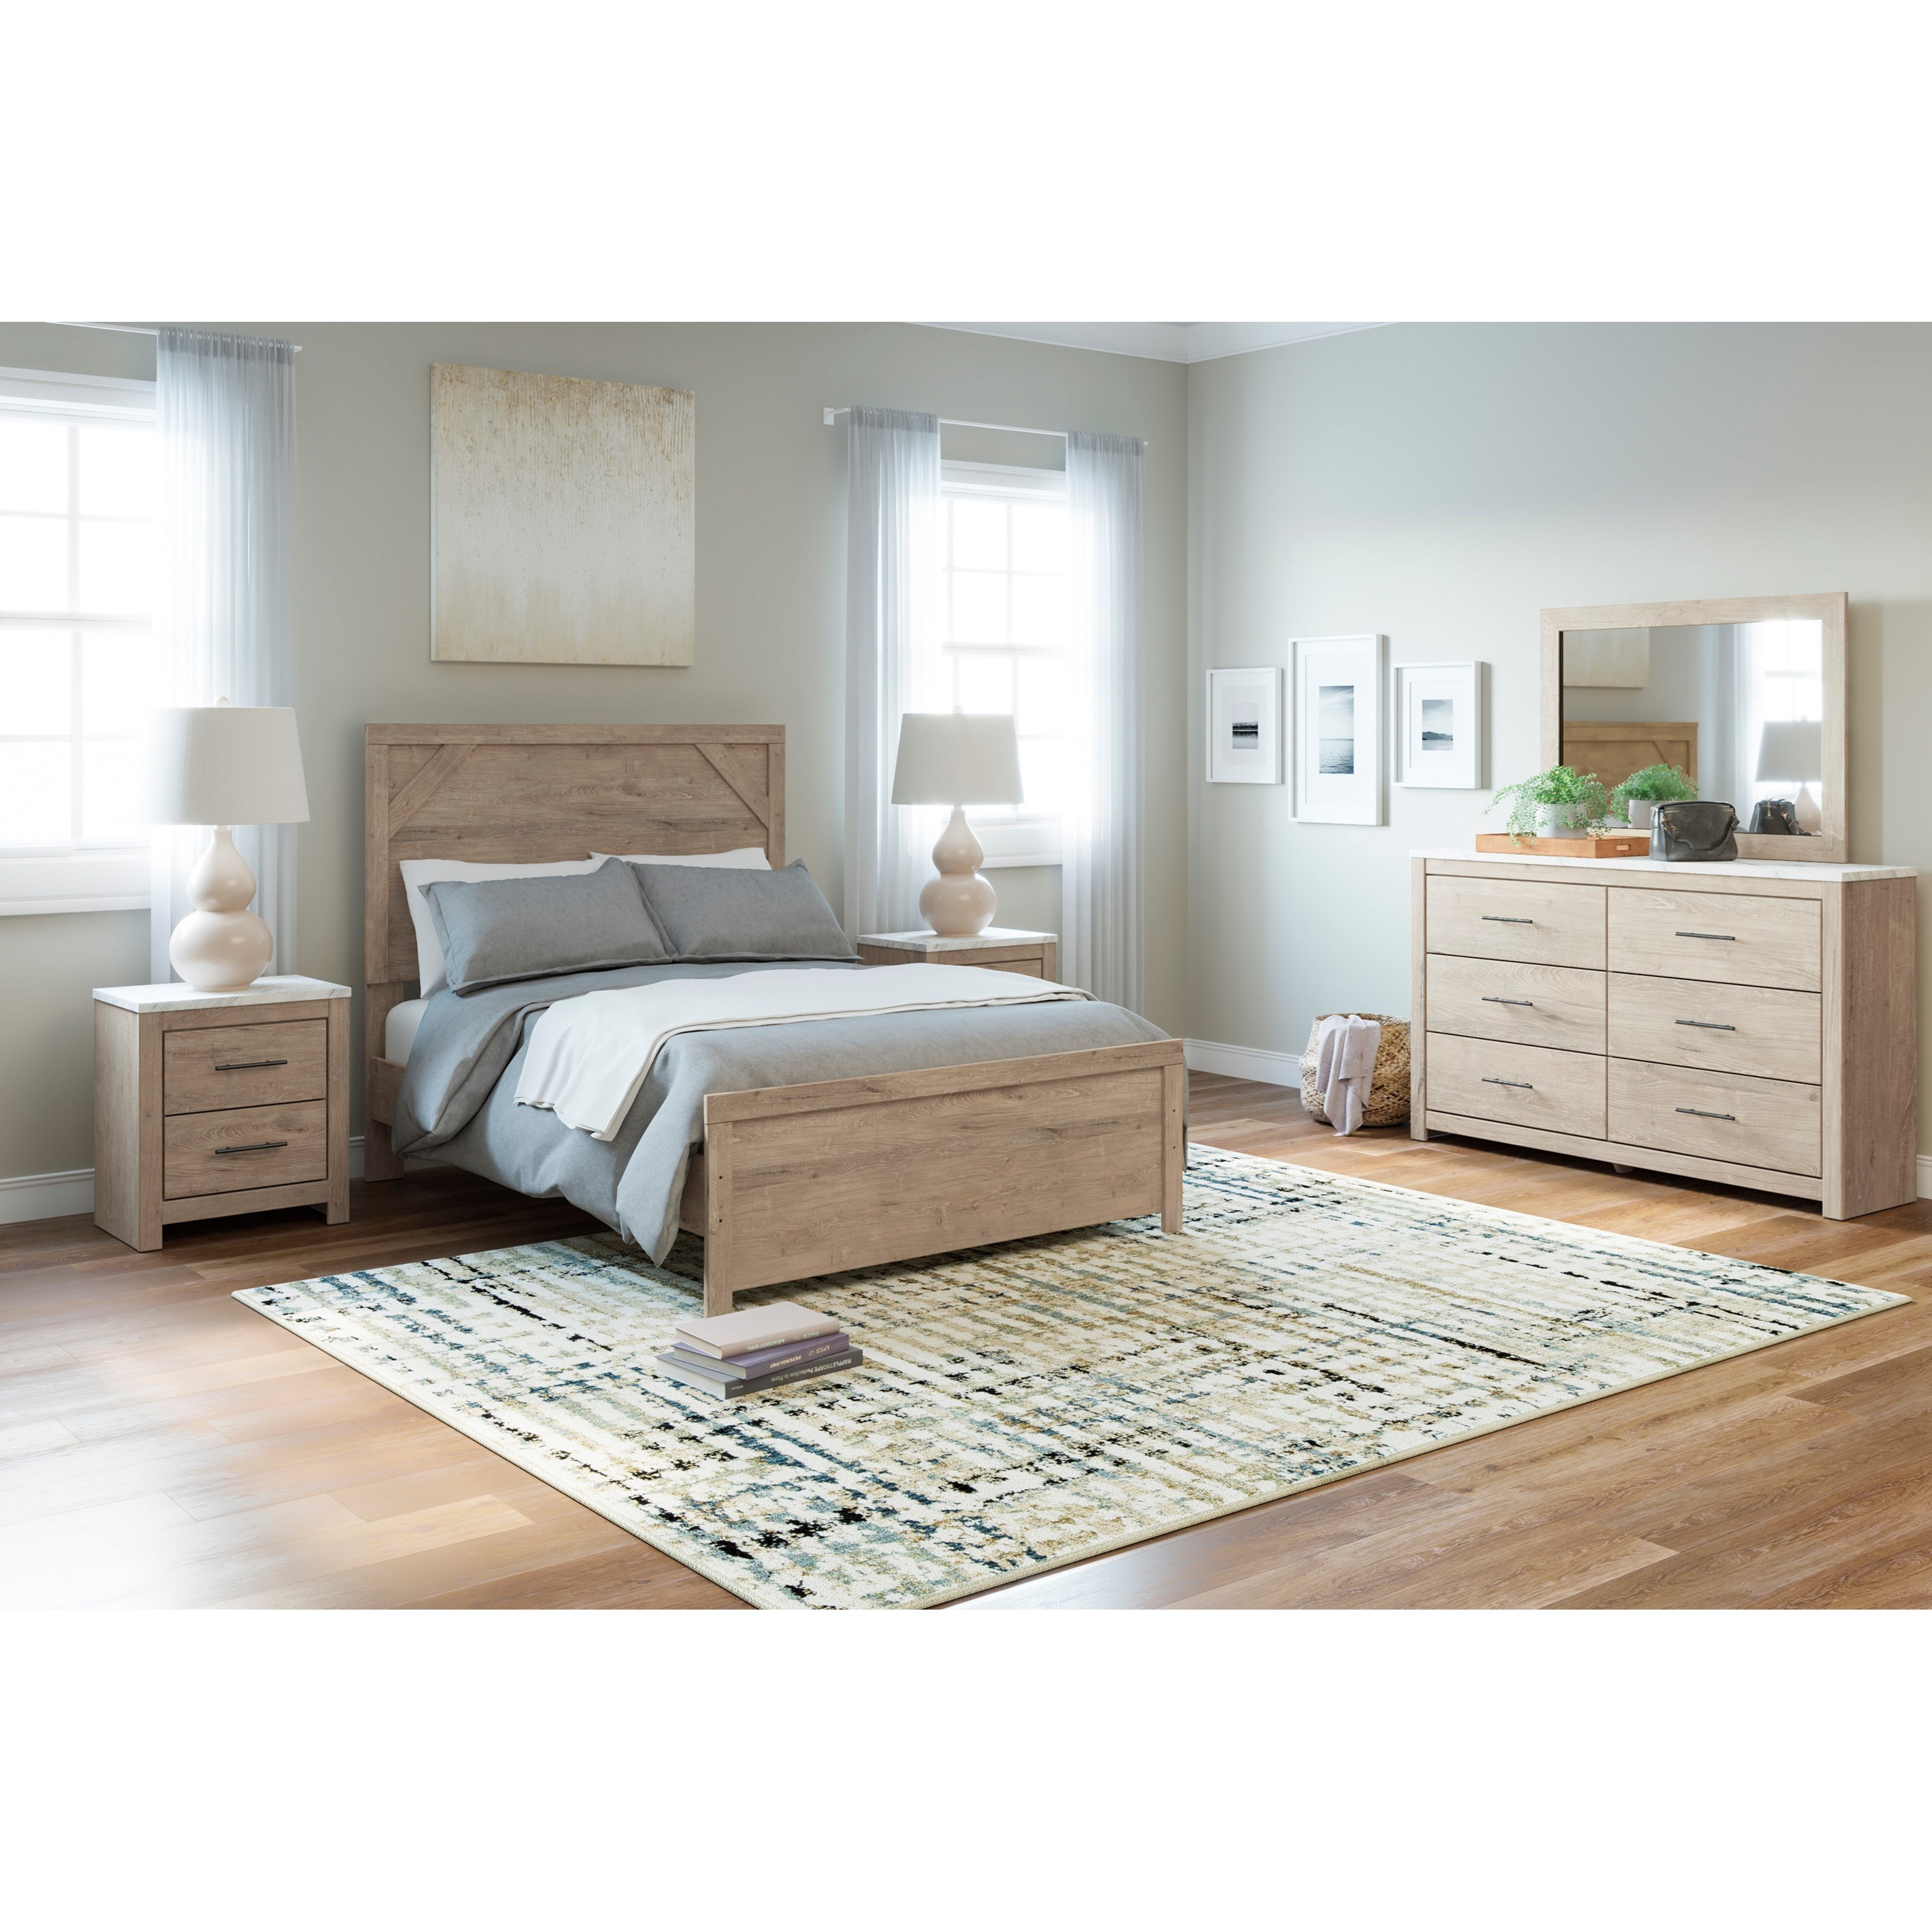 Senniberg Full Bedroom Group by Signature Design by Ashley at Northeast Factory Direct